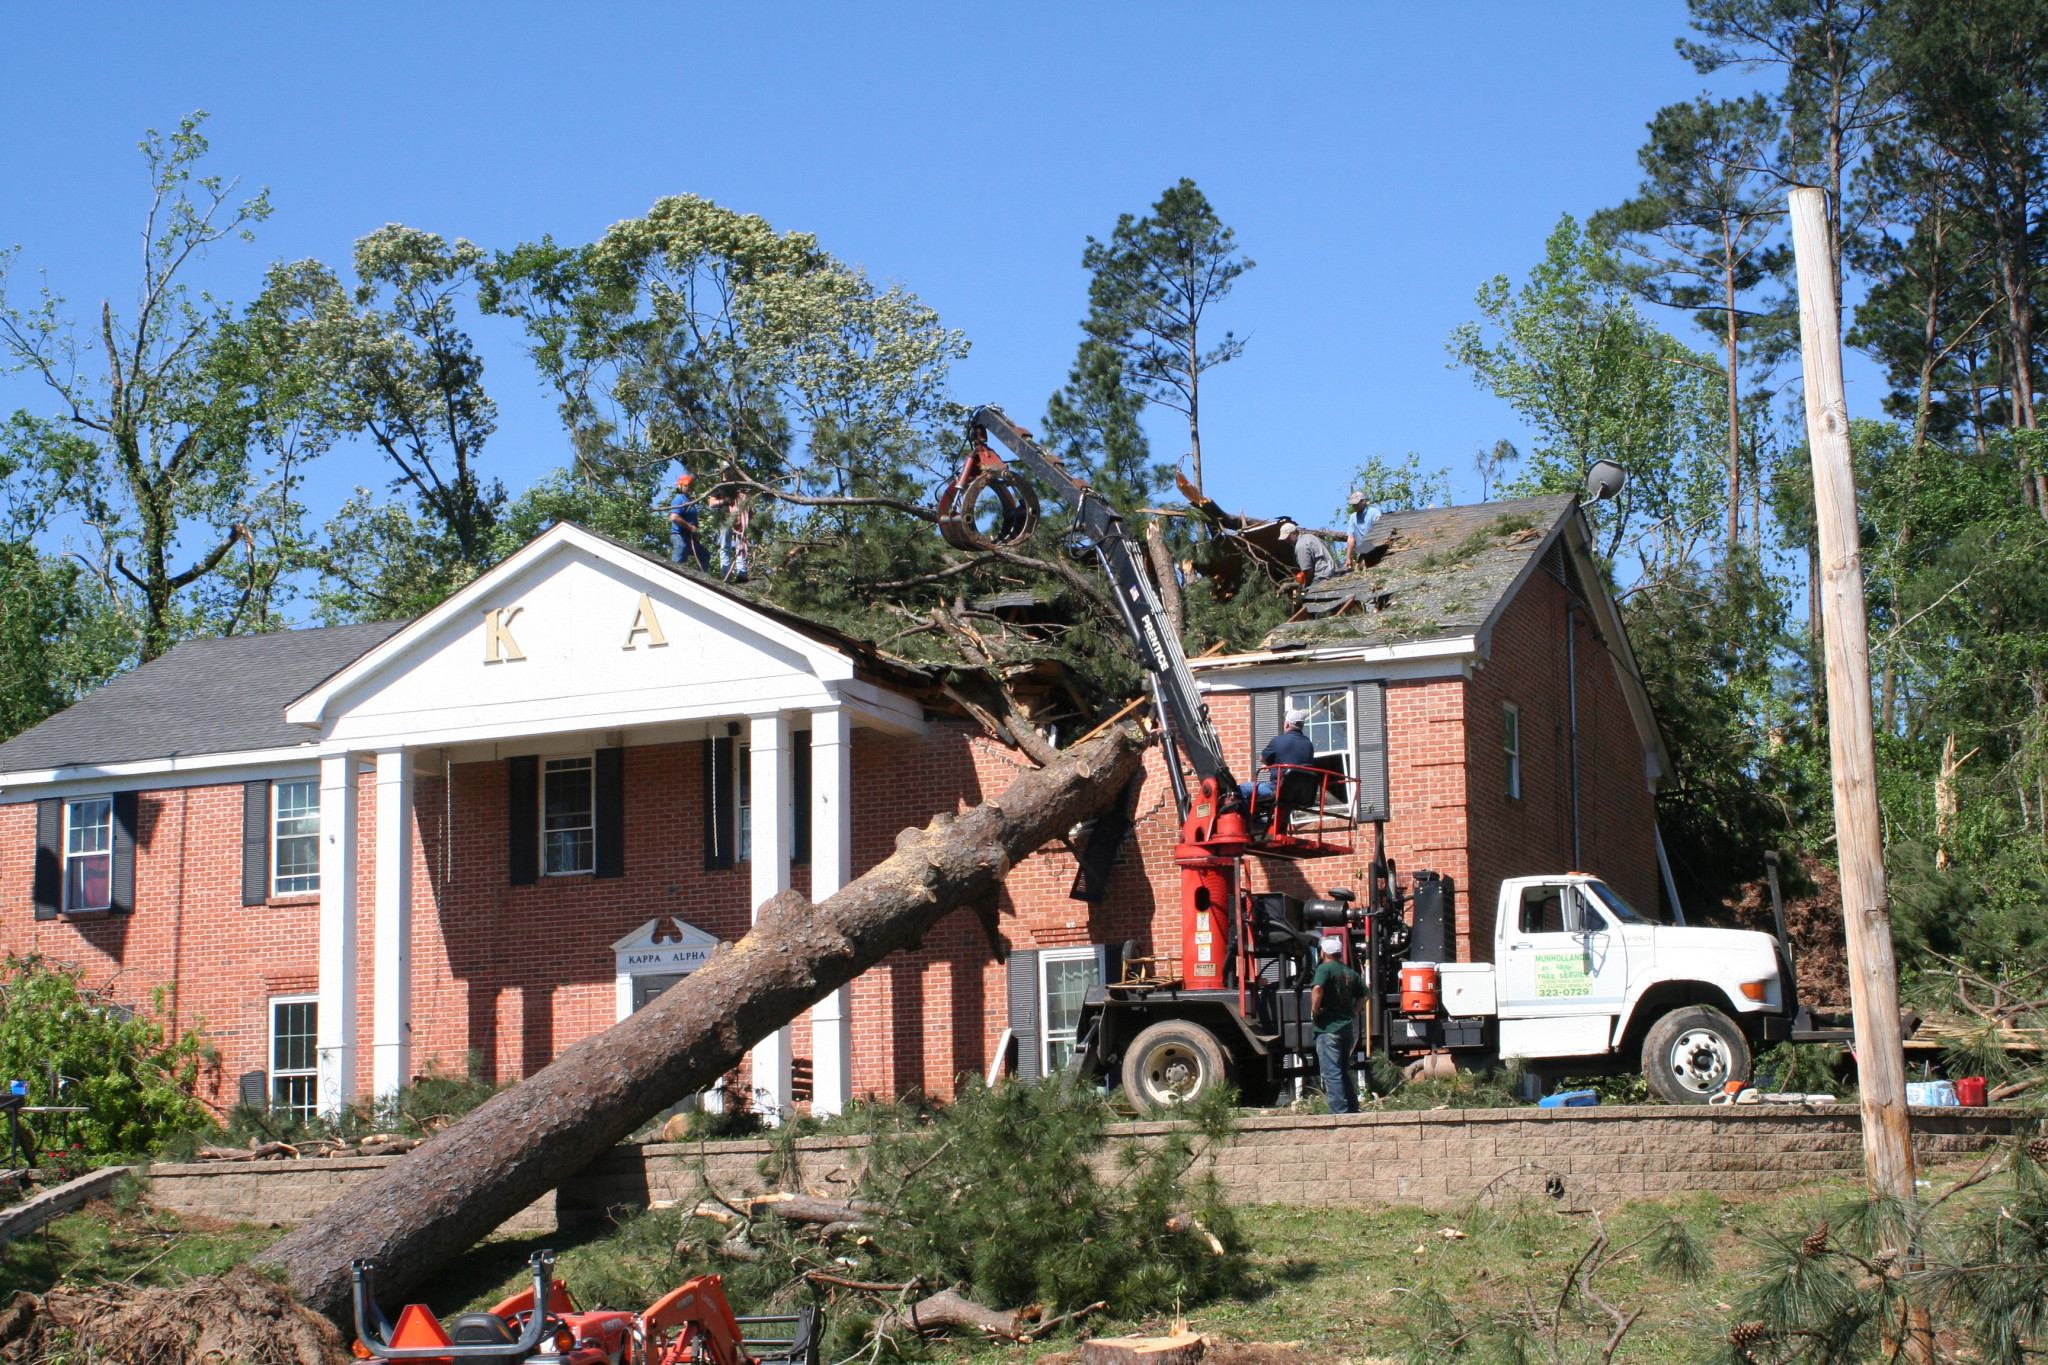 The Louisiana Tech Kappa Alpha fraternity house took a tree through the roof from last year's storm.